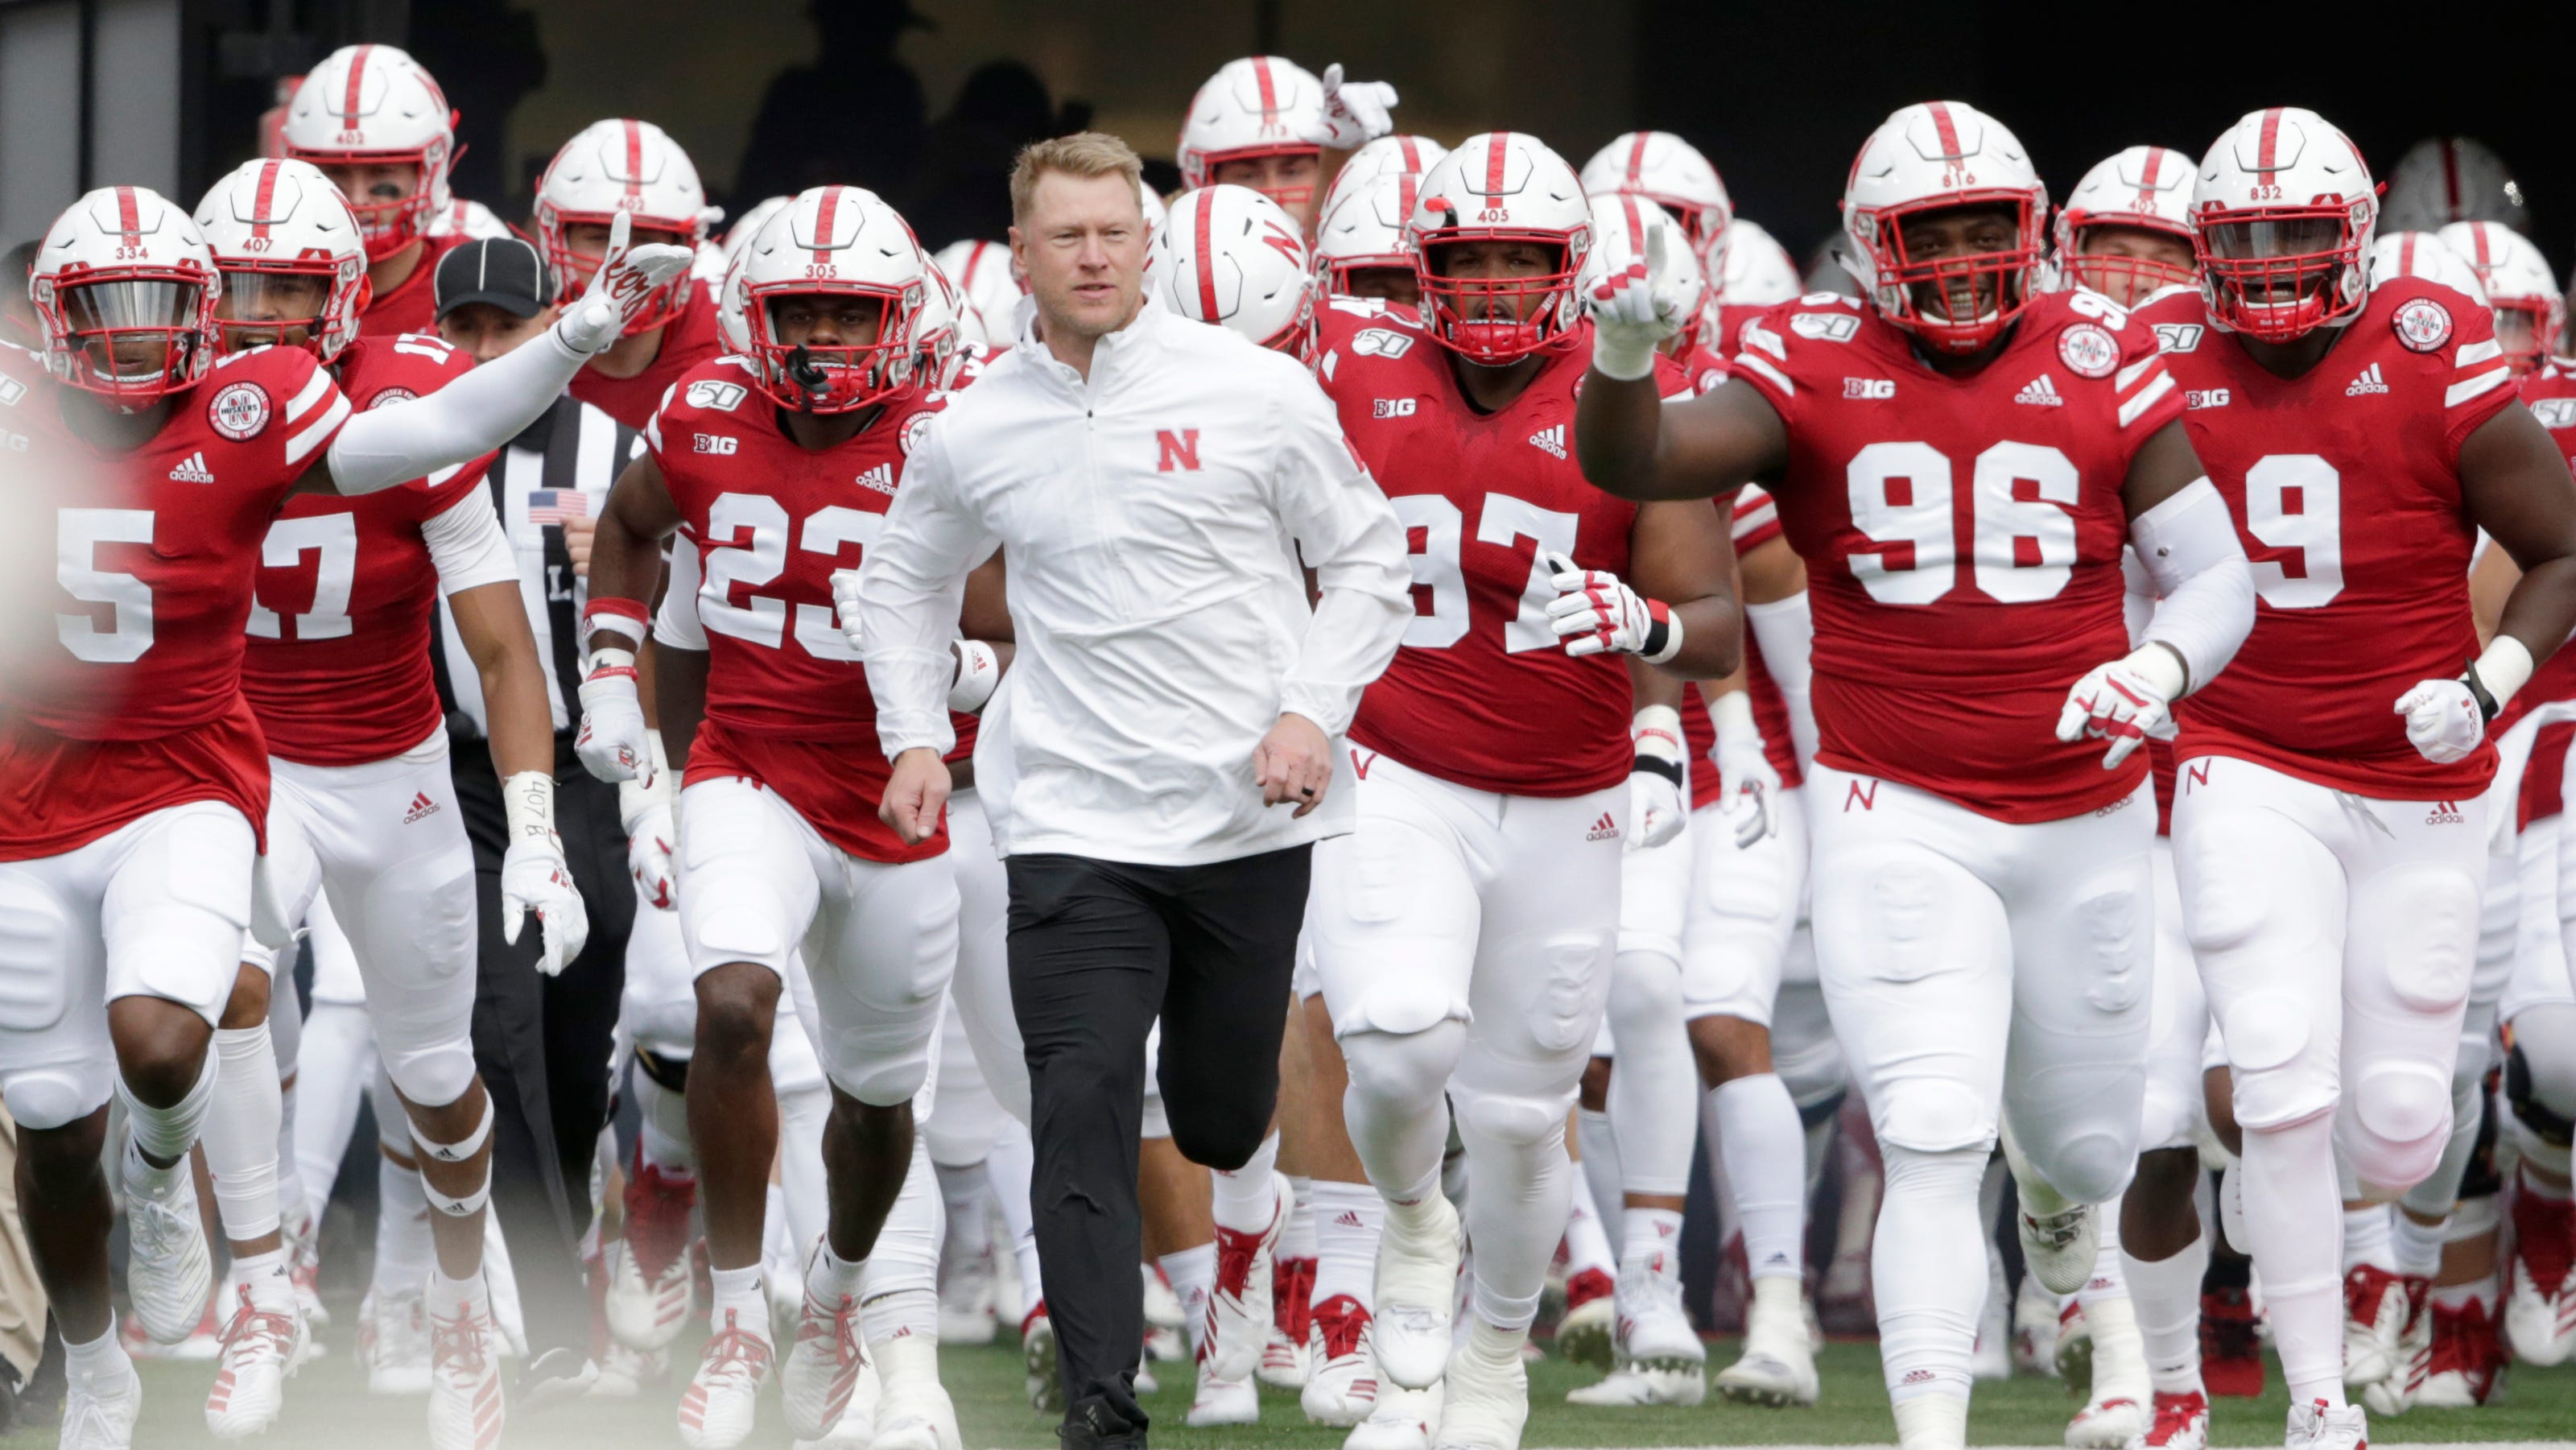 Opinion: Nebraska bailing out on Big Ten may be more than bluster